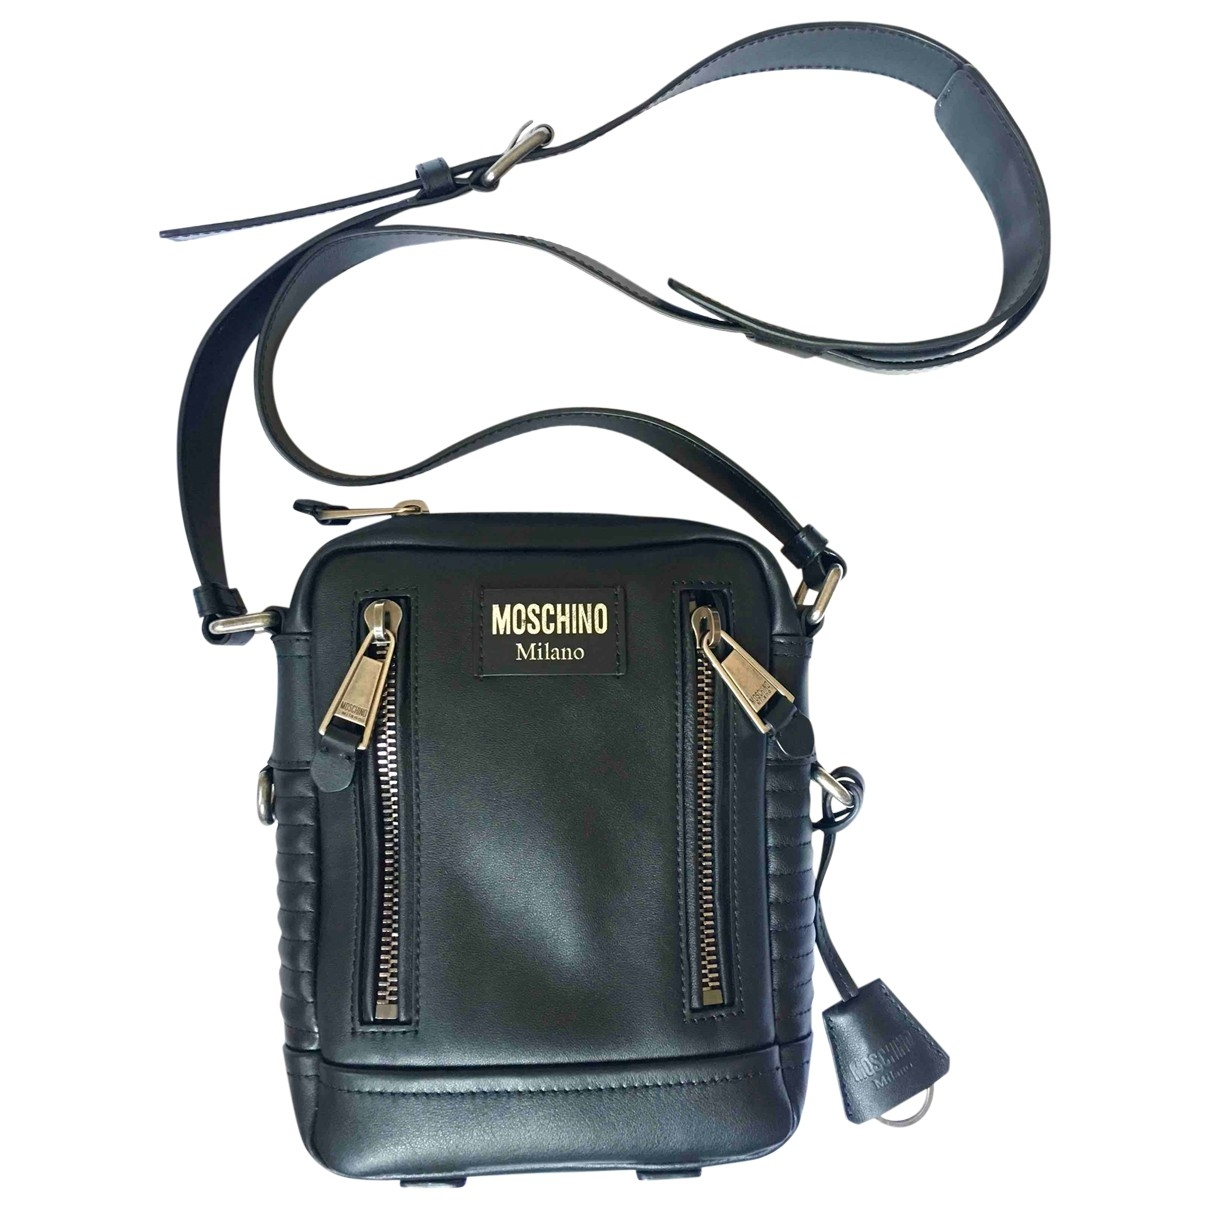 Moschino \N Black Leather bag for Men \N